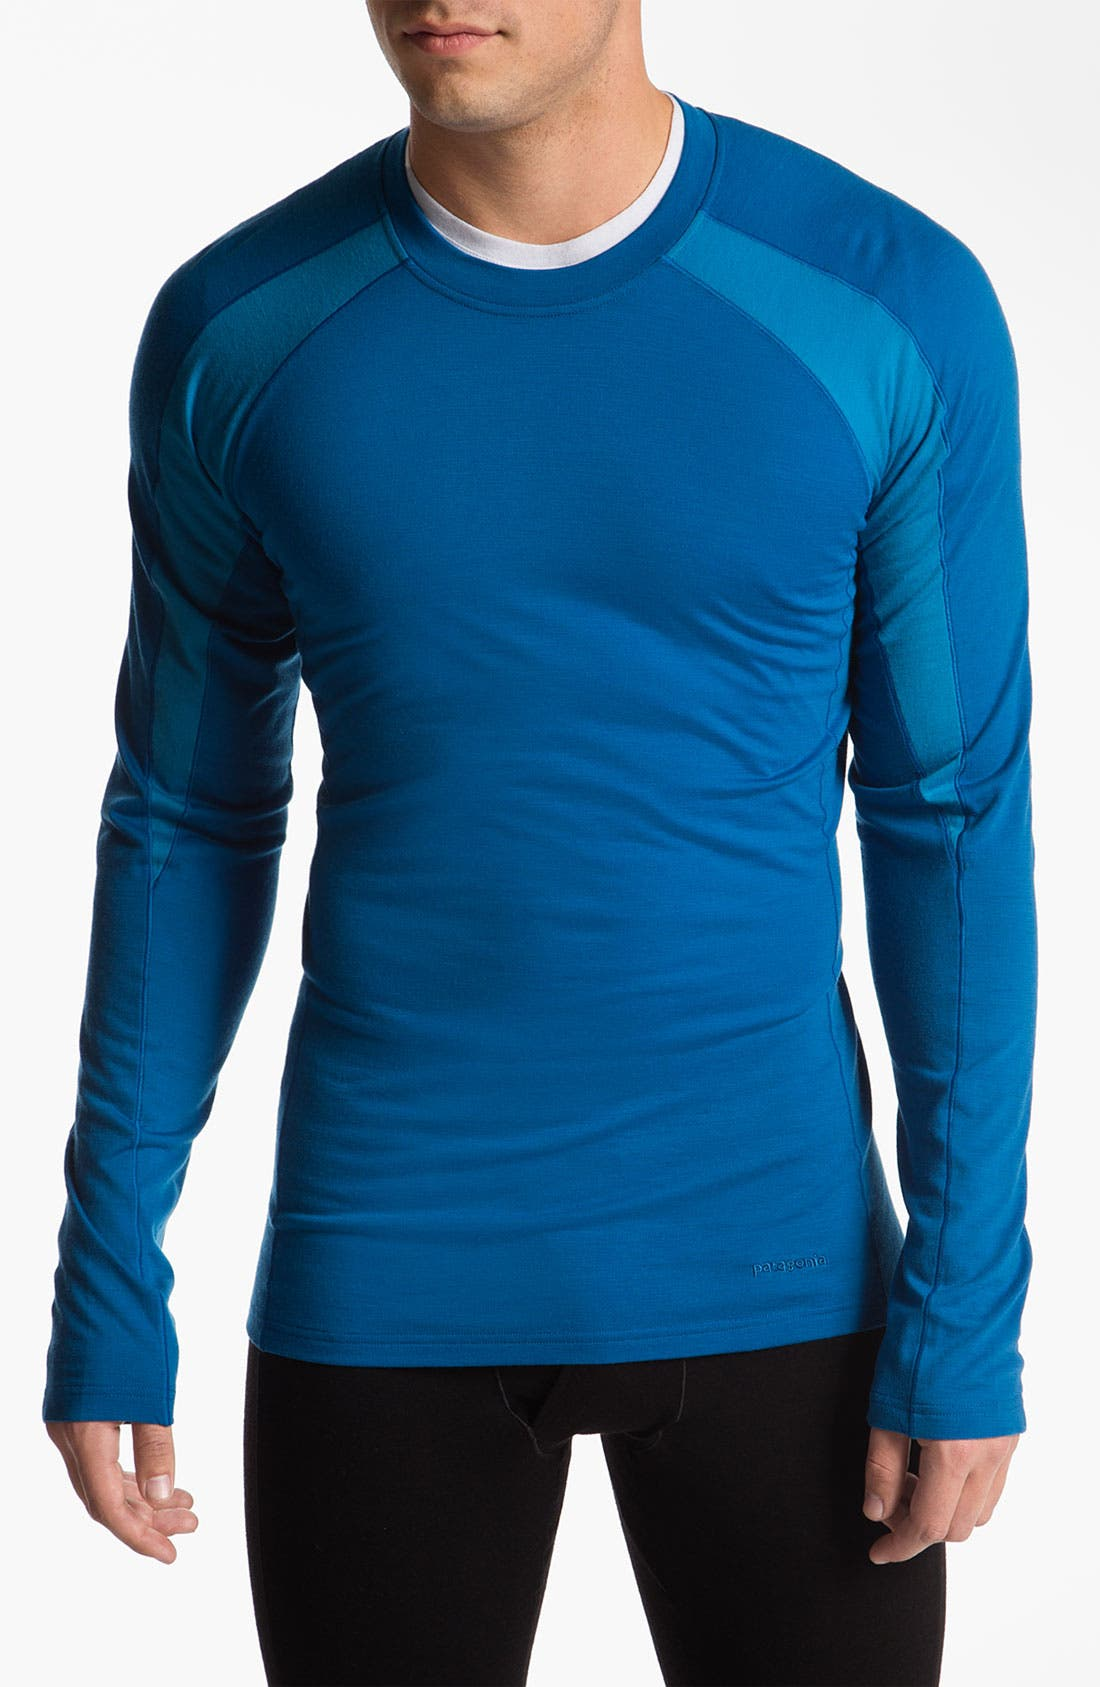 Main Image - Patagonia 'Merino 2' Long Sleeve T-Shirt (Online Only)